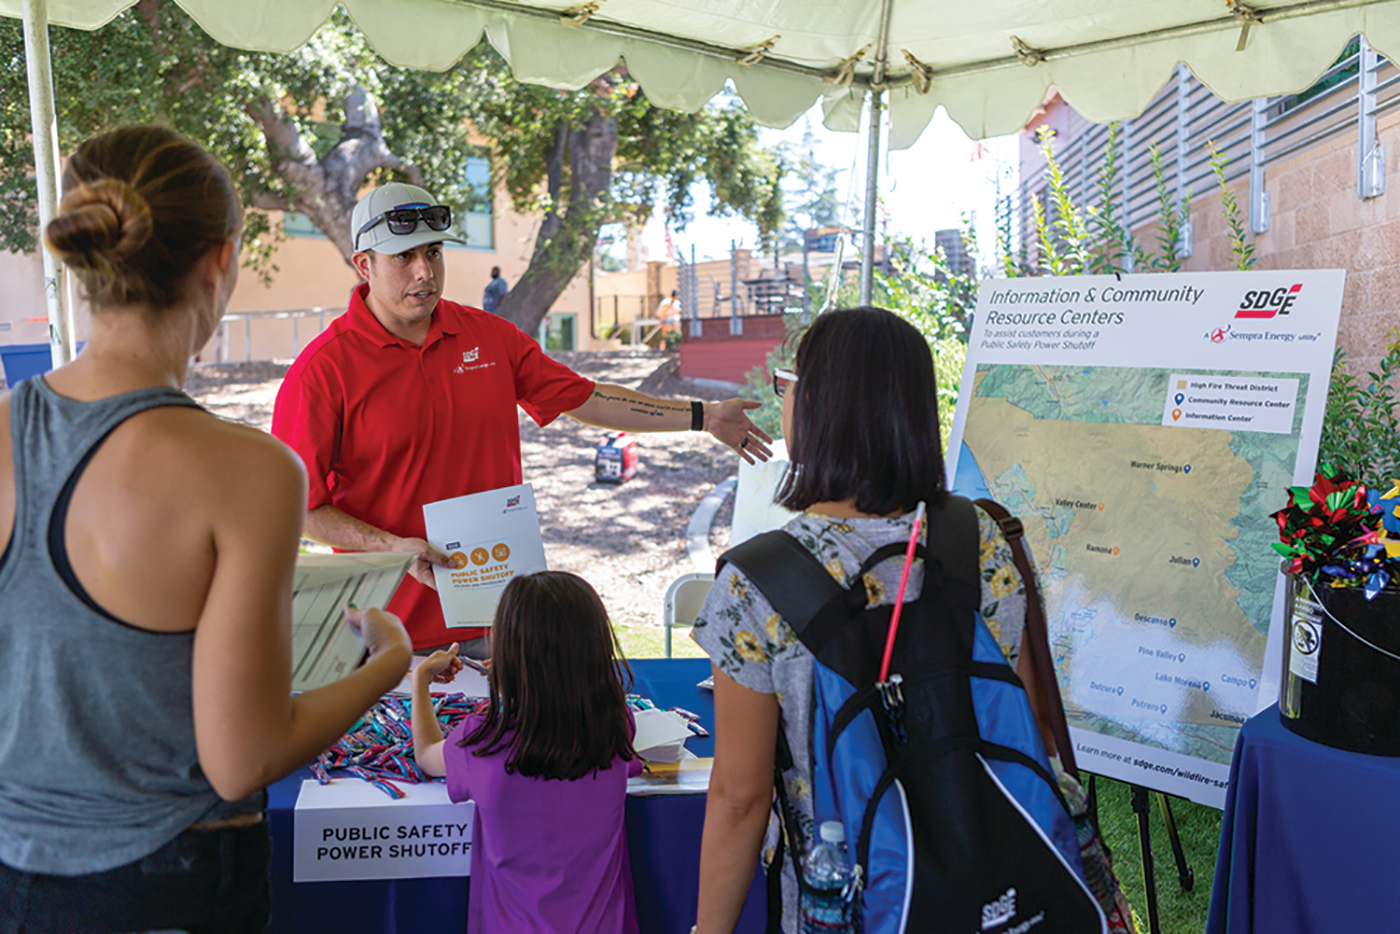 SDG&E representative meeting with community members at the SDG&E Wildfire Safety Fair.